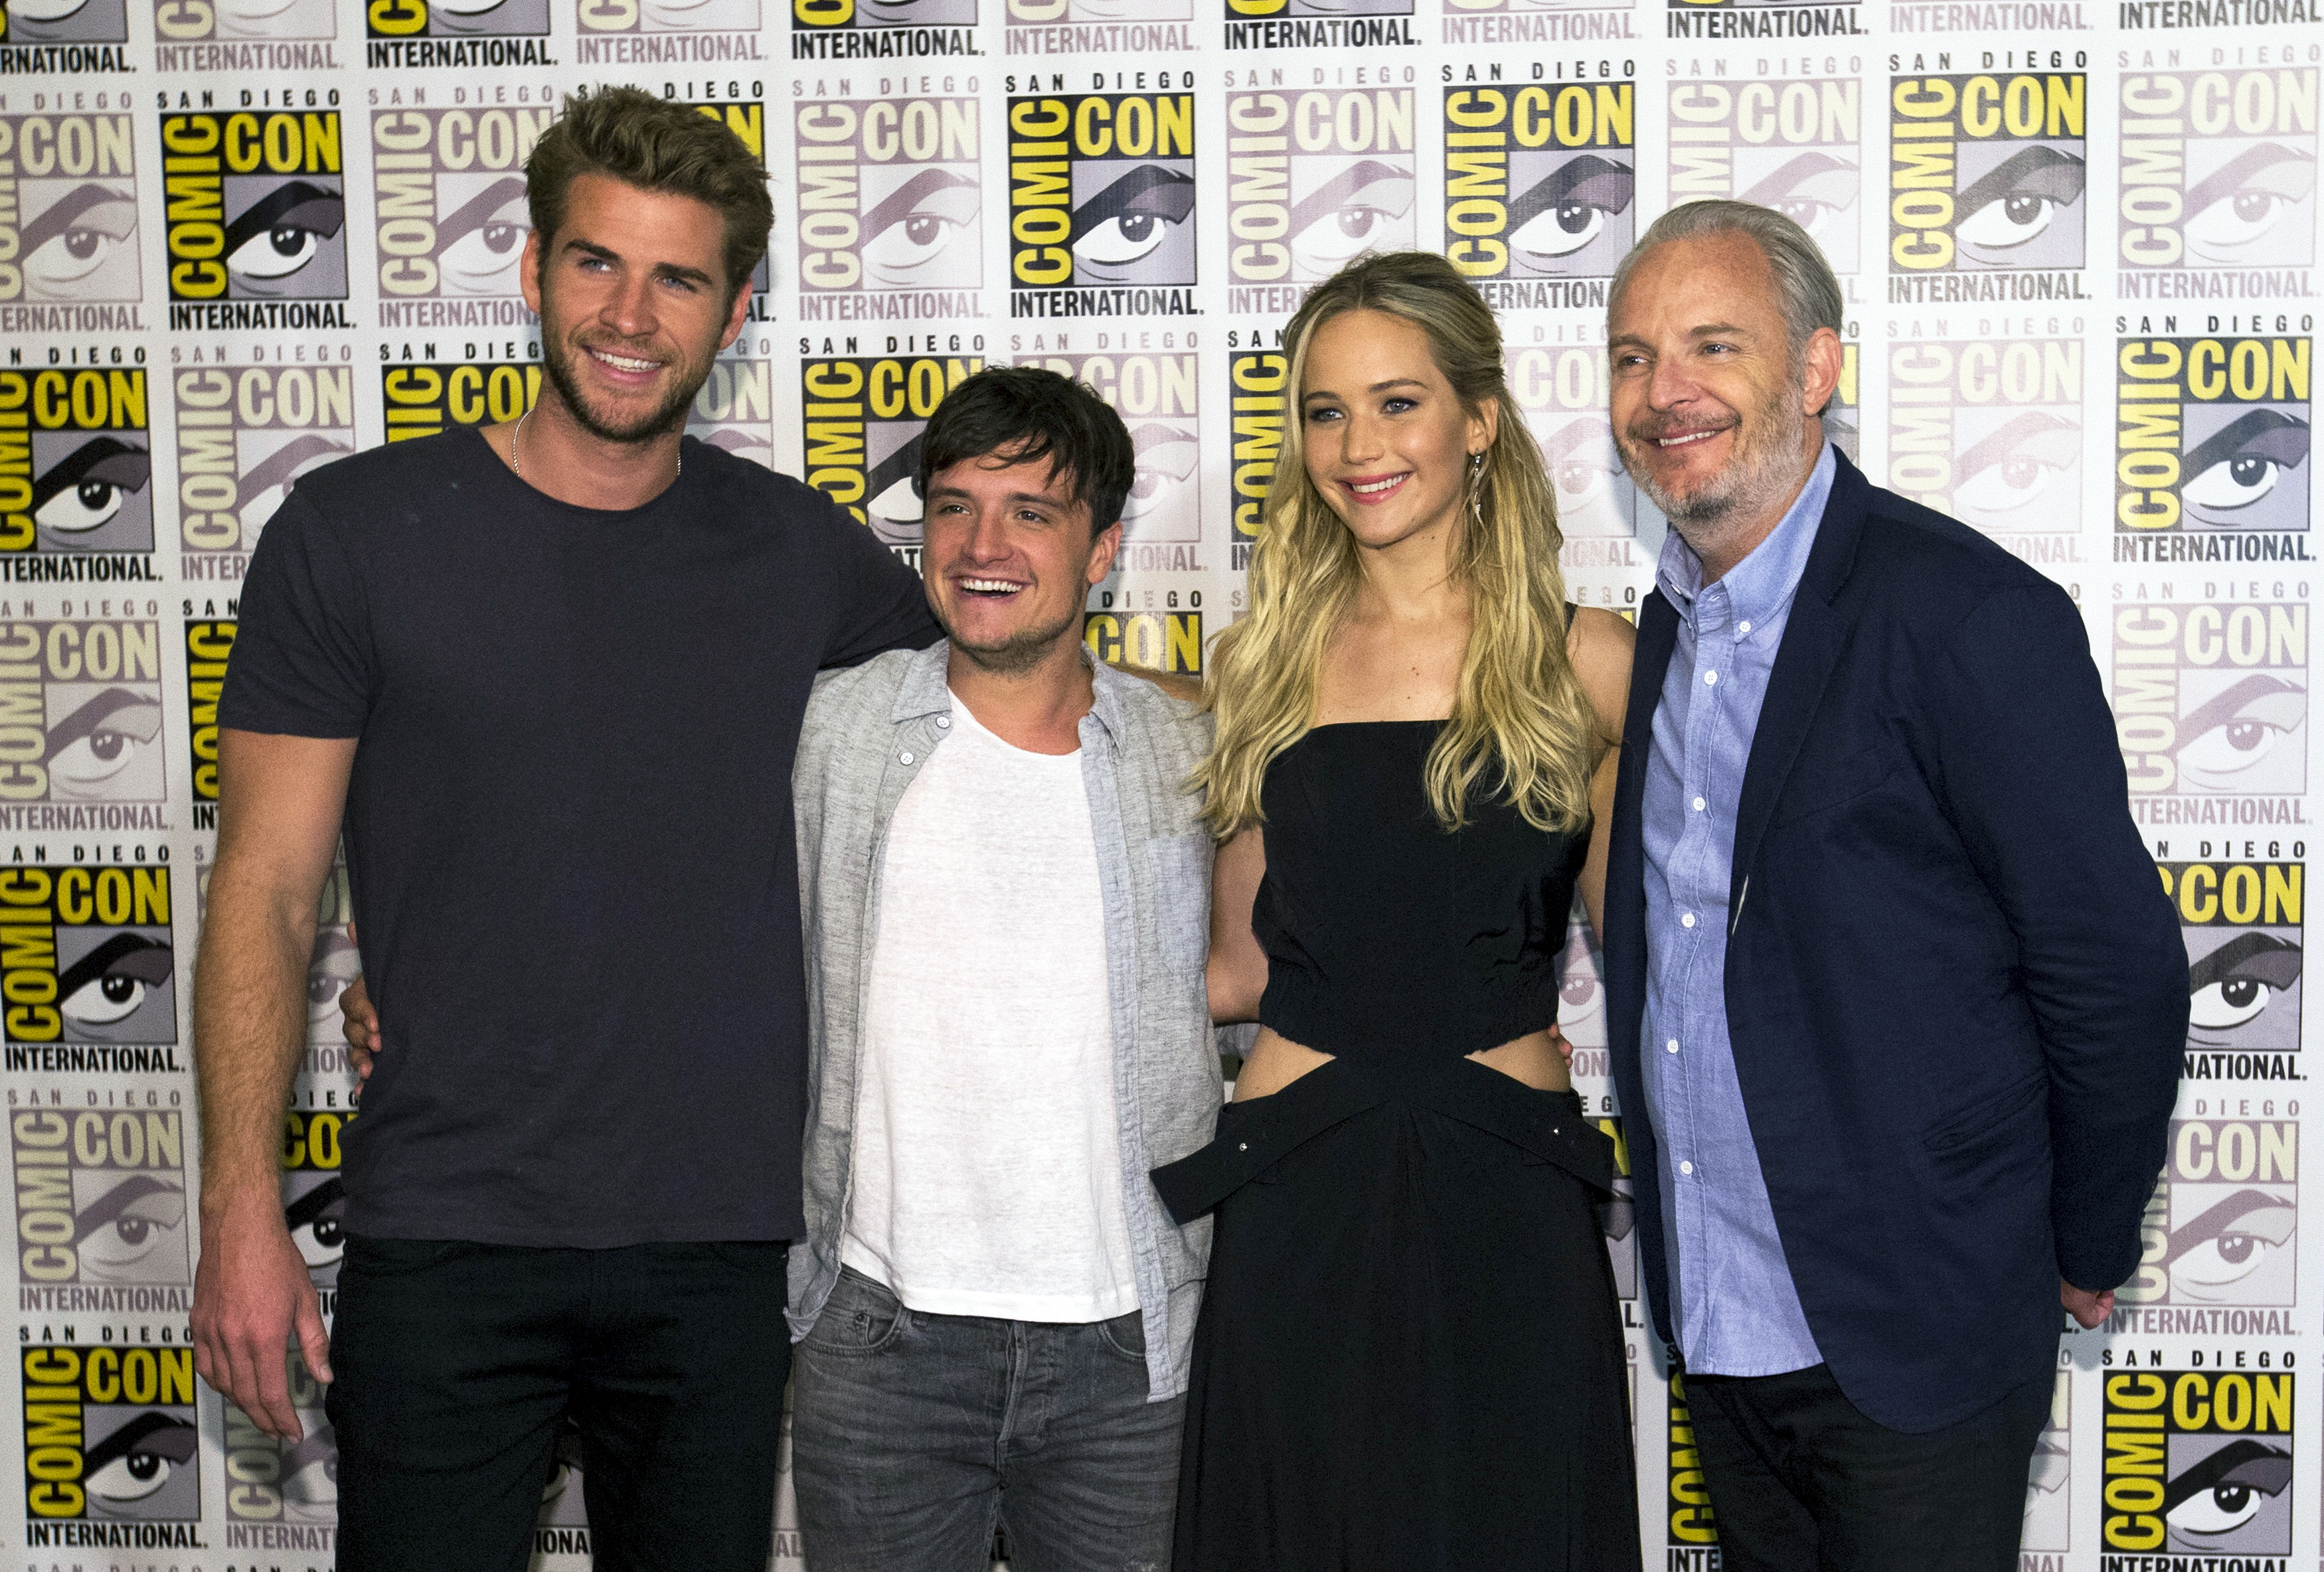 Director of The Hunger Games: Mockingjay - Part 1 & 2 Francis Lawrence poses with cast members Jennifer Lawrence, Josh Hutcherson and Liam Hemsworth during the 2015 Comic-Con International Convention on July 9, 2015 in San Diego, Calif.